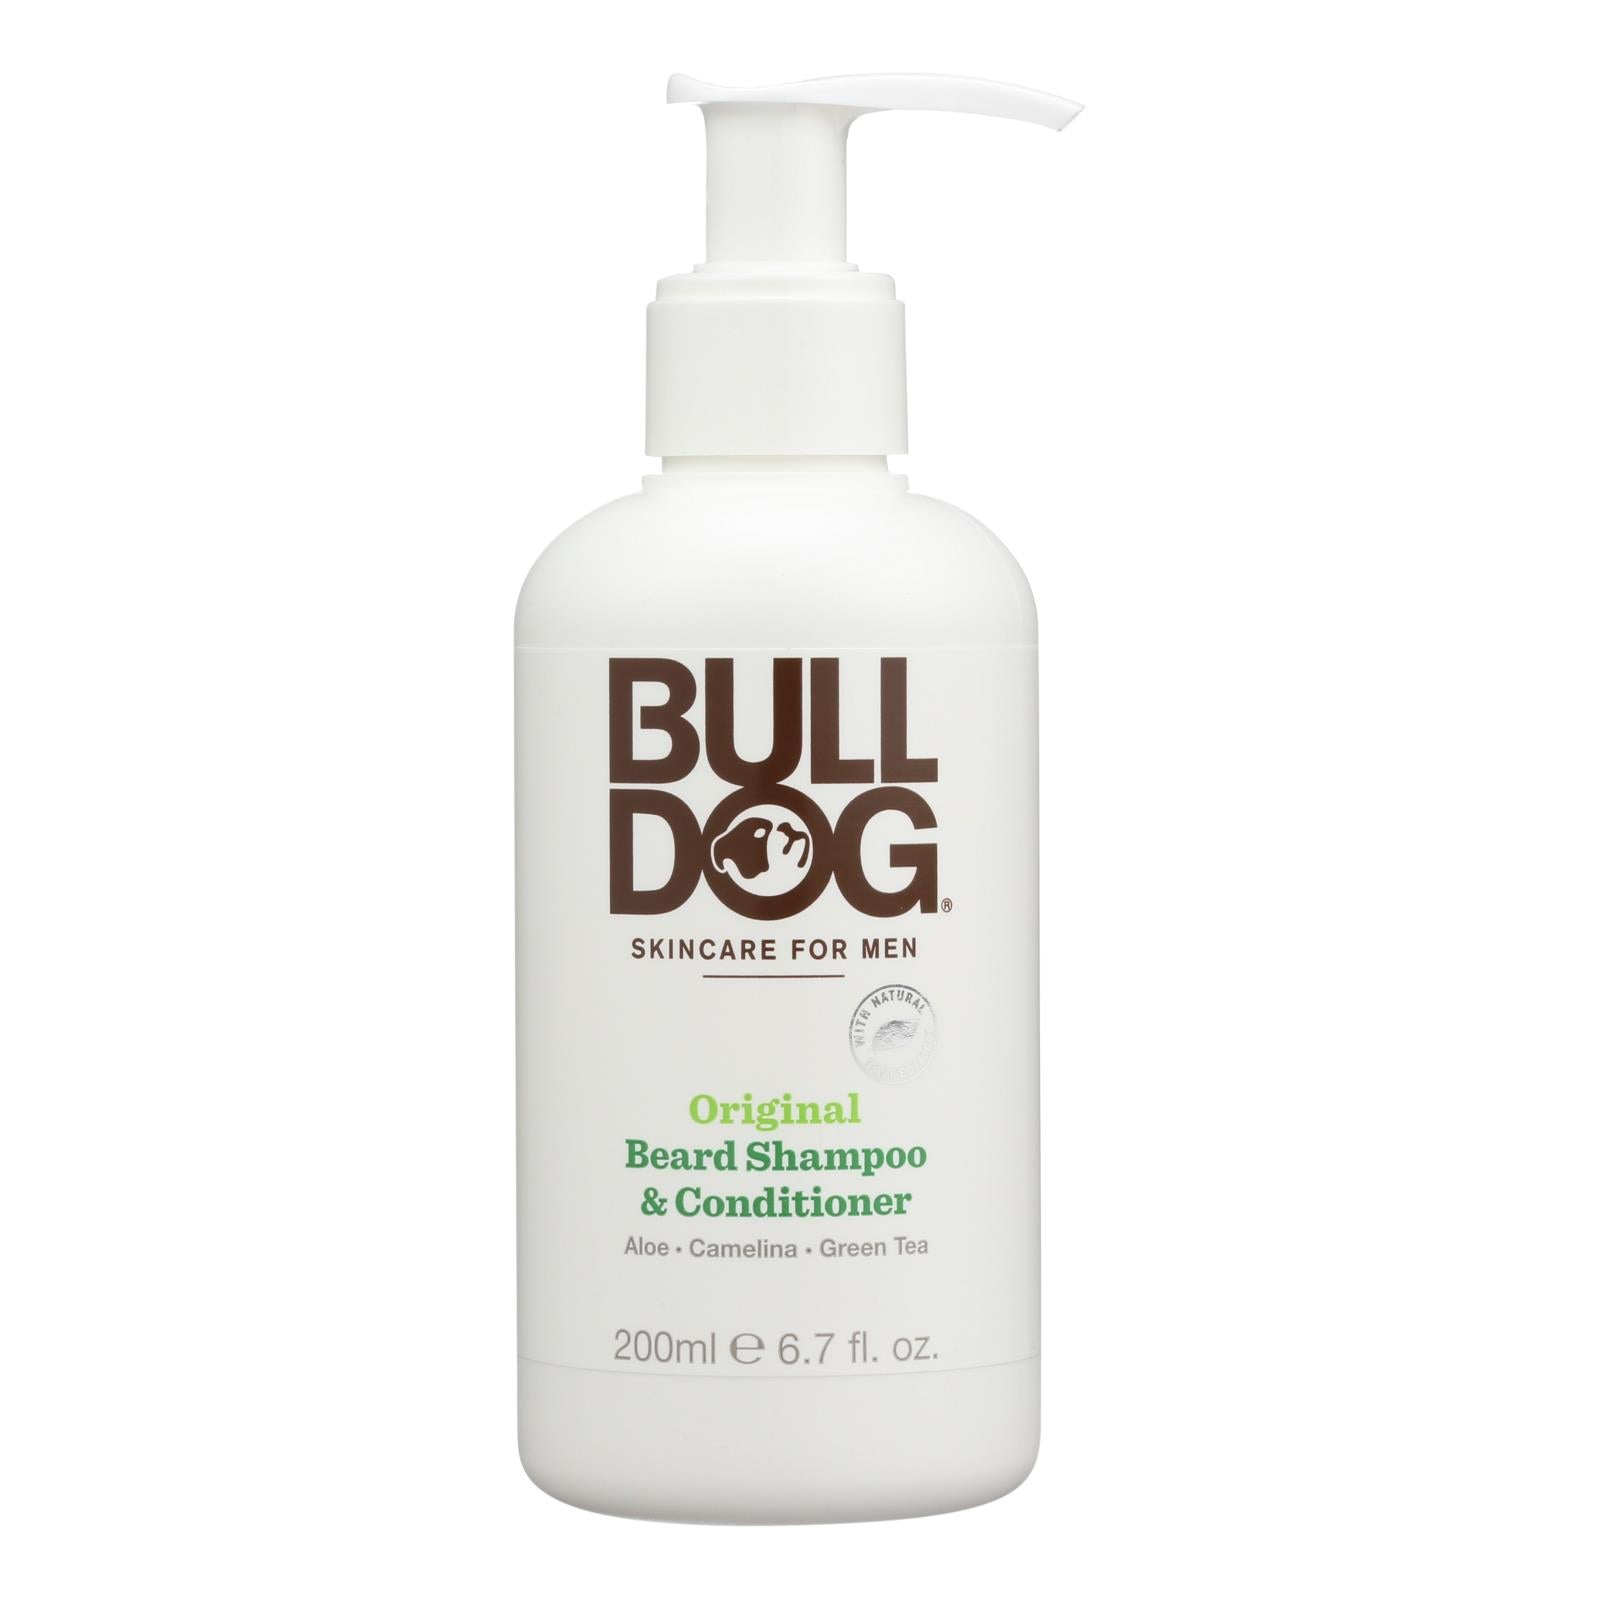 200ml Bulldog Original Beard Shampoo & Conditioner Natural Skincare